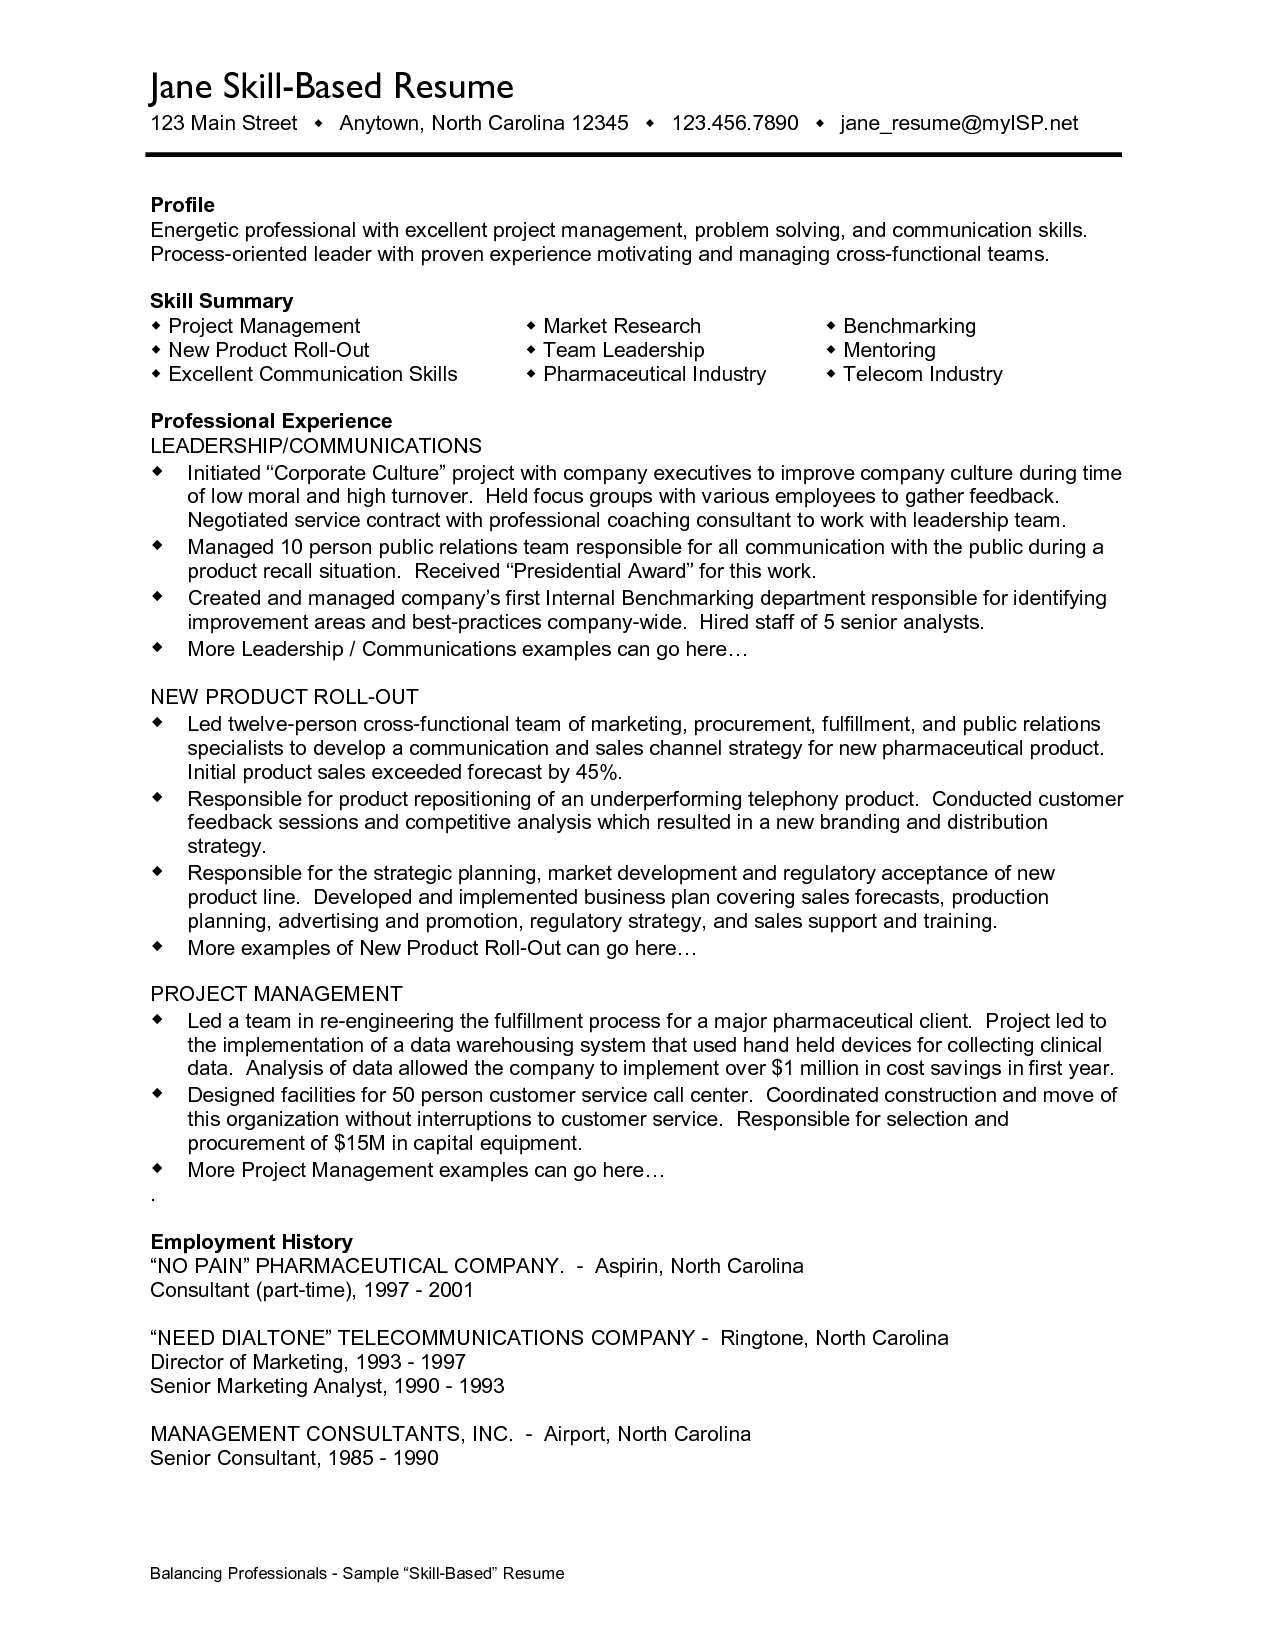 Career Builder Resume Template Job Resume Communication Skills  Httpwwwresumecareerjob